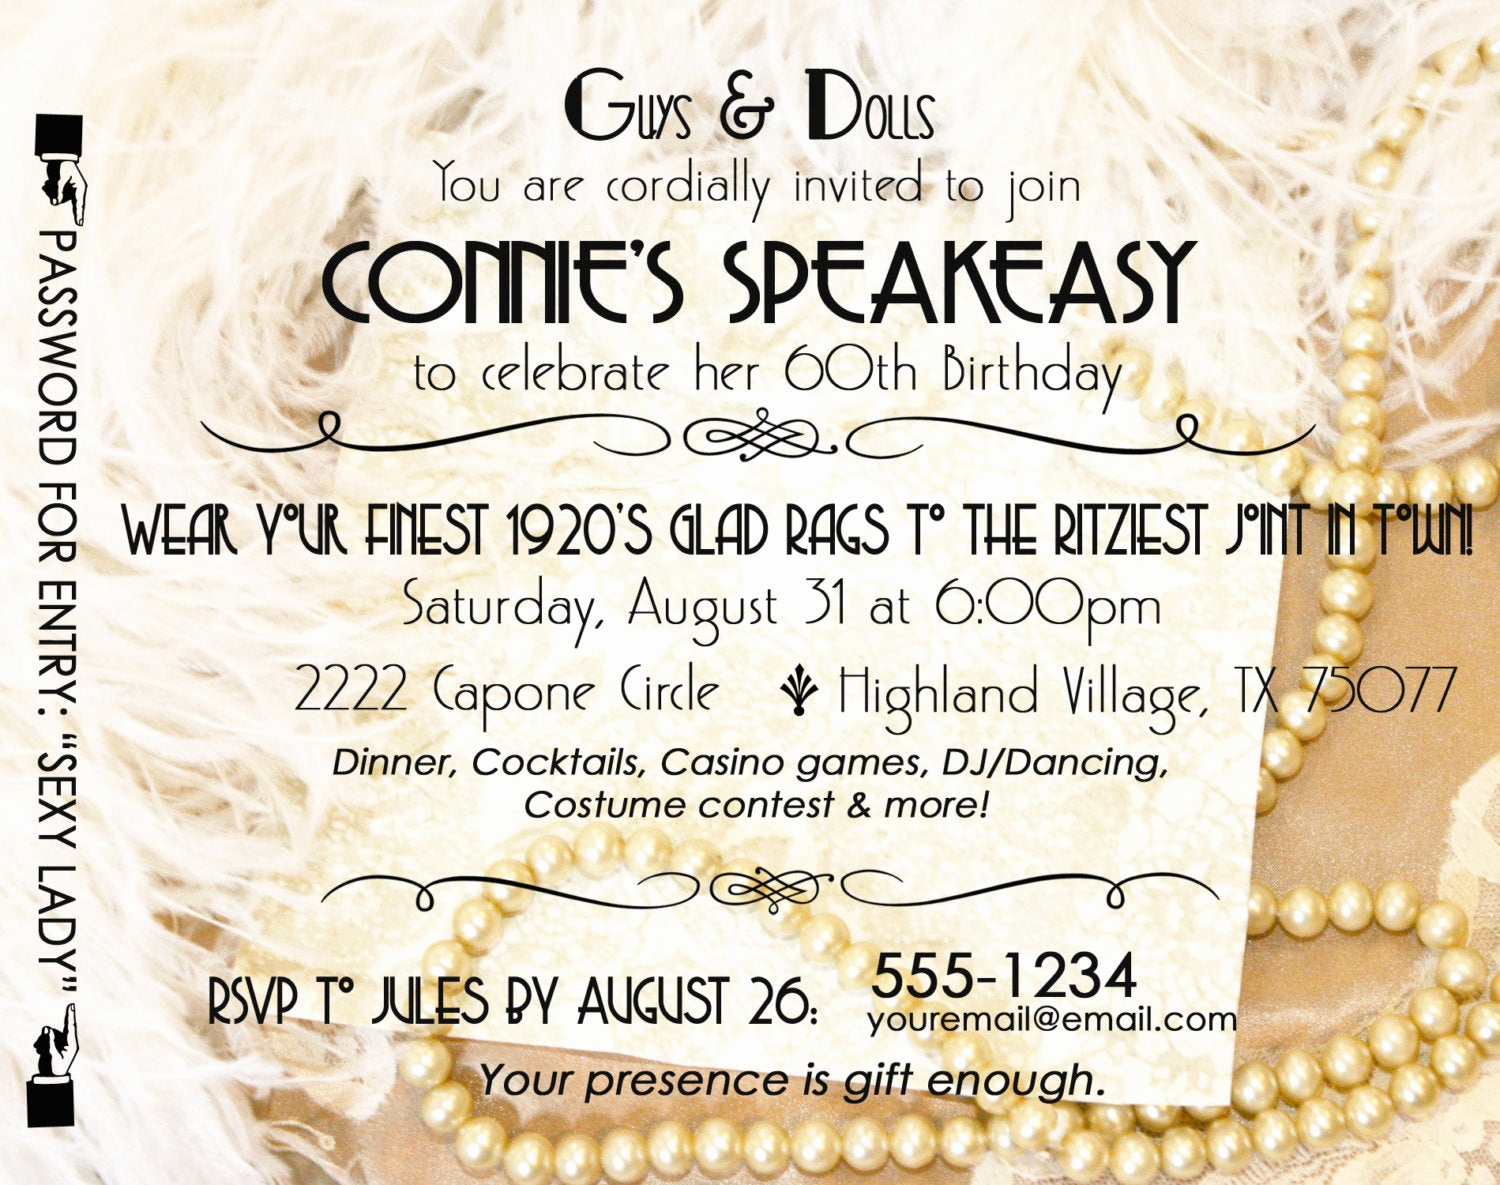 Great Gatsby Invitation Wording Luxury Gatsby Roaring 20 S Speakeasy Invitation Twenties Wedding